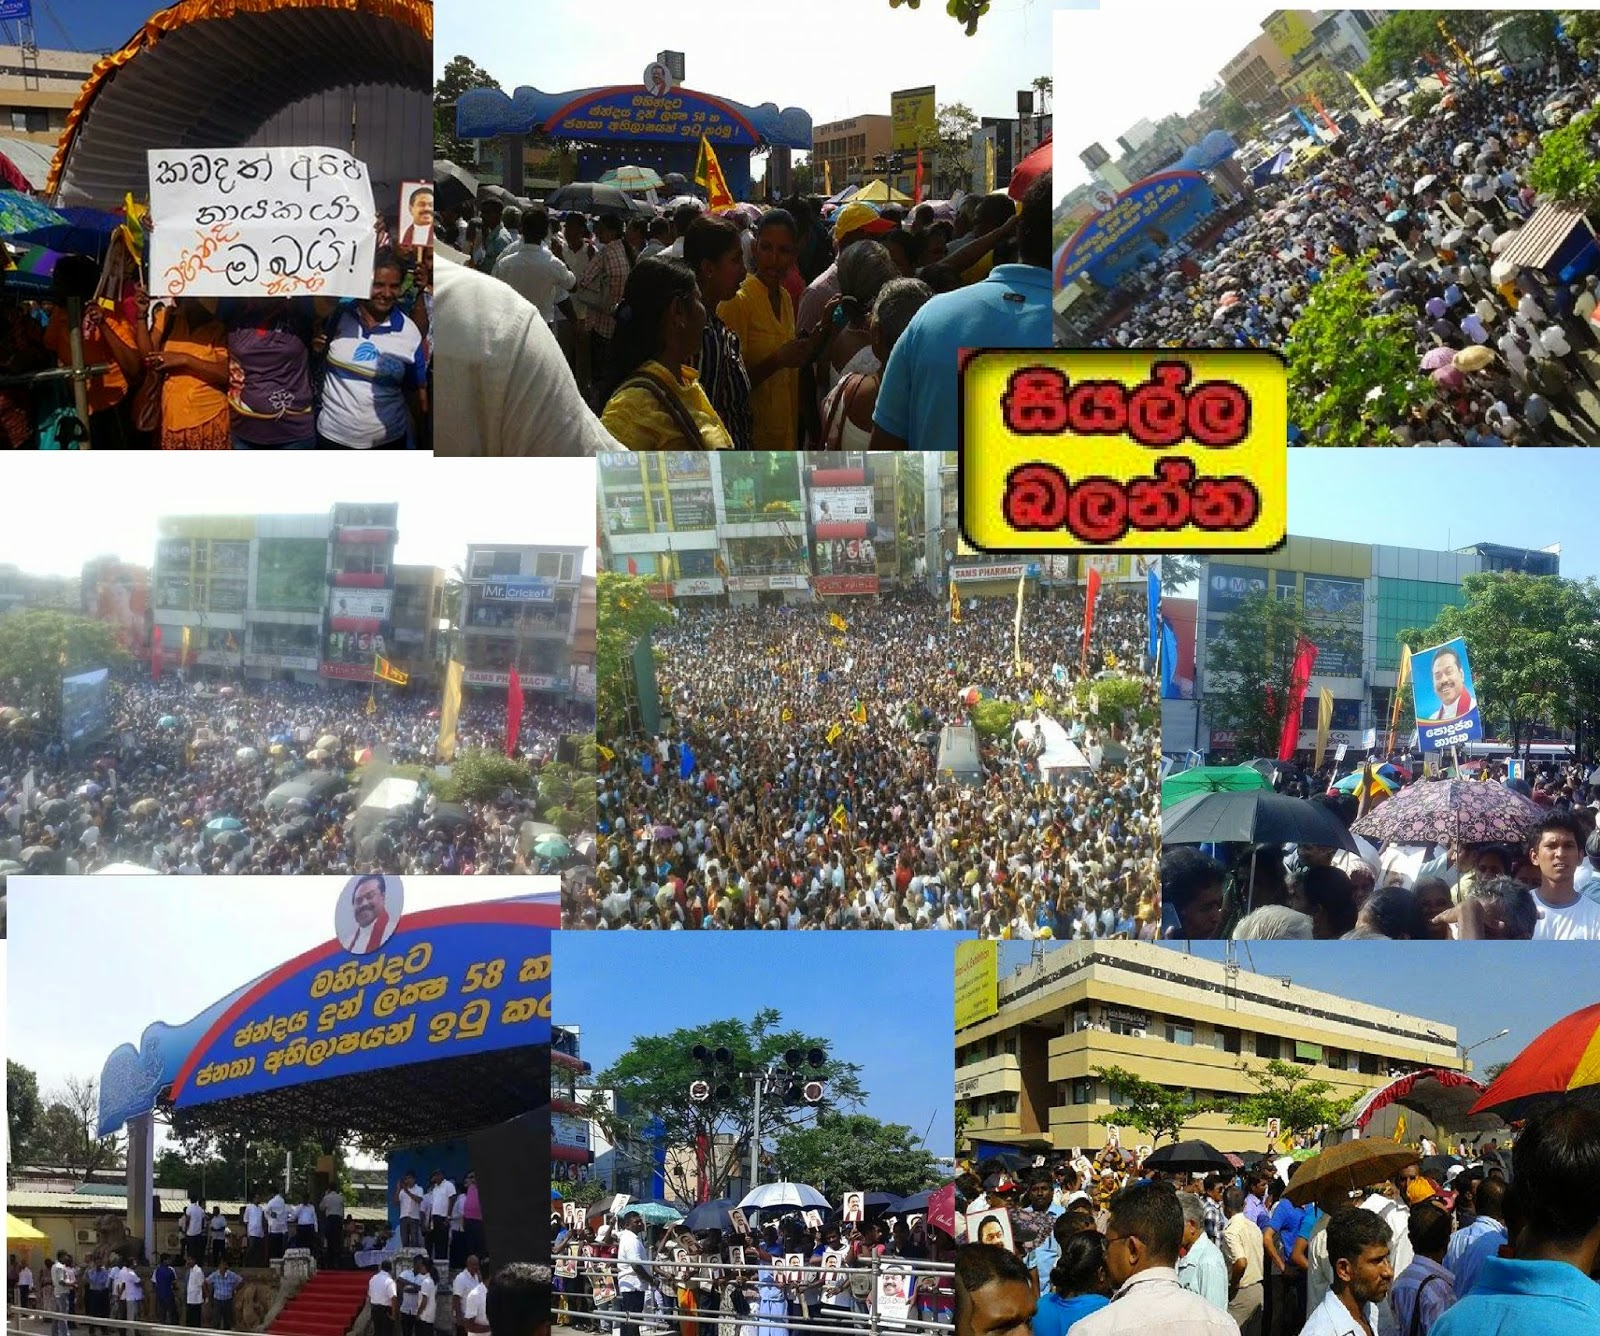 http://picture.gossiplankahotnews.com/2015/02/rally-in-nugegoda-to-mahinda-as-pm.html